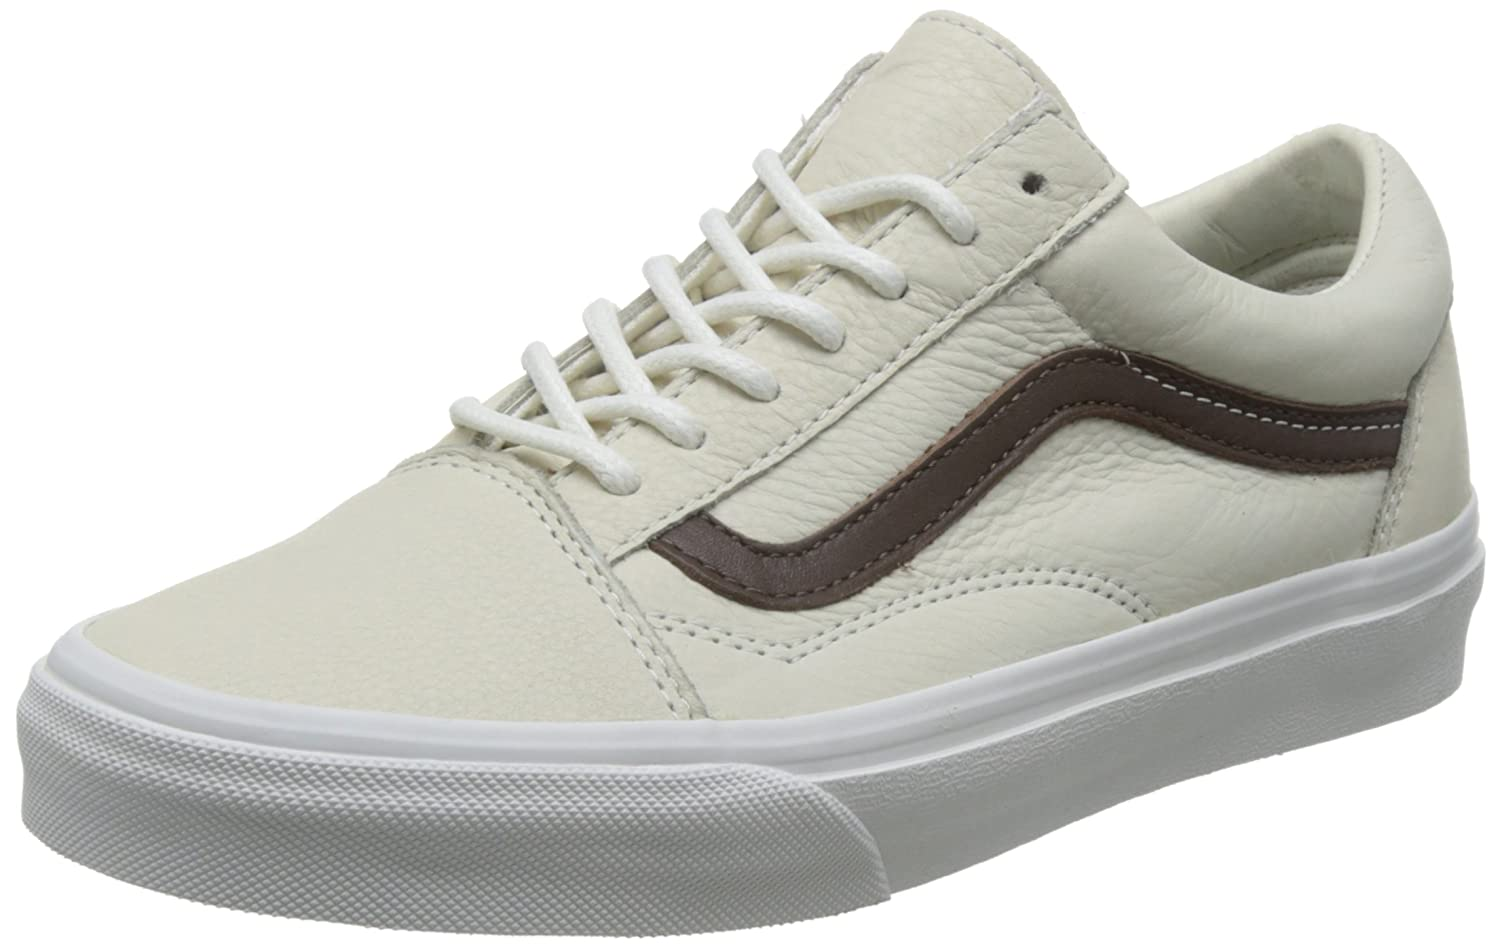 Vans Unisex Old Skool Classic Skate Shoes B01DXA6Y9O 6.5 D(M) US|Blanc De Blanc / Potting Soil